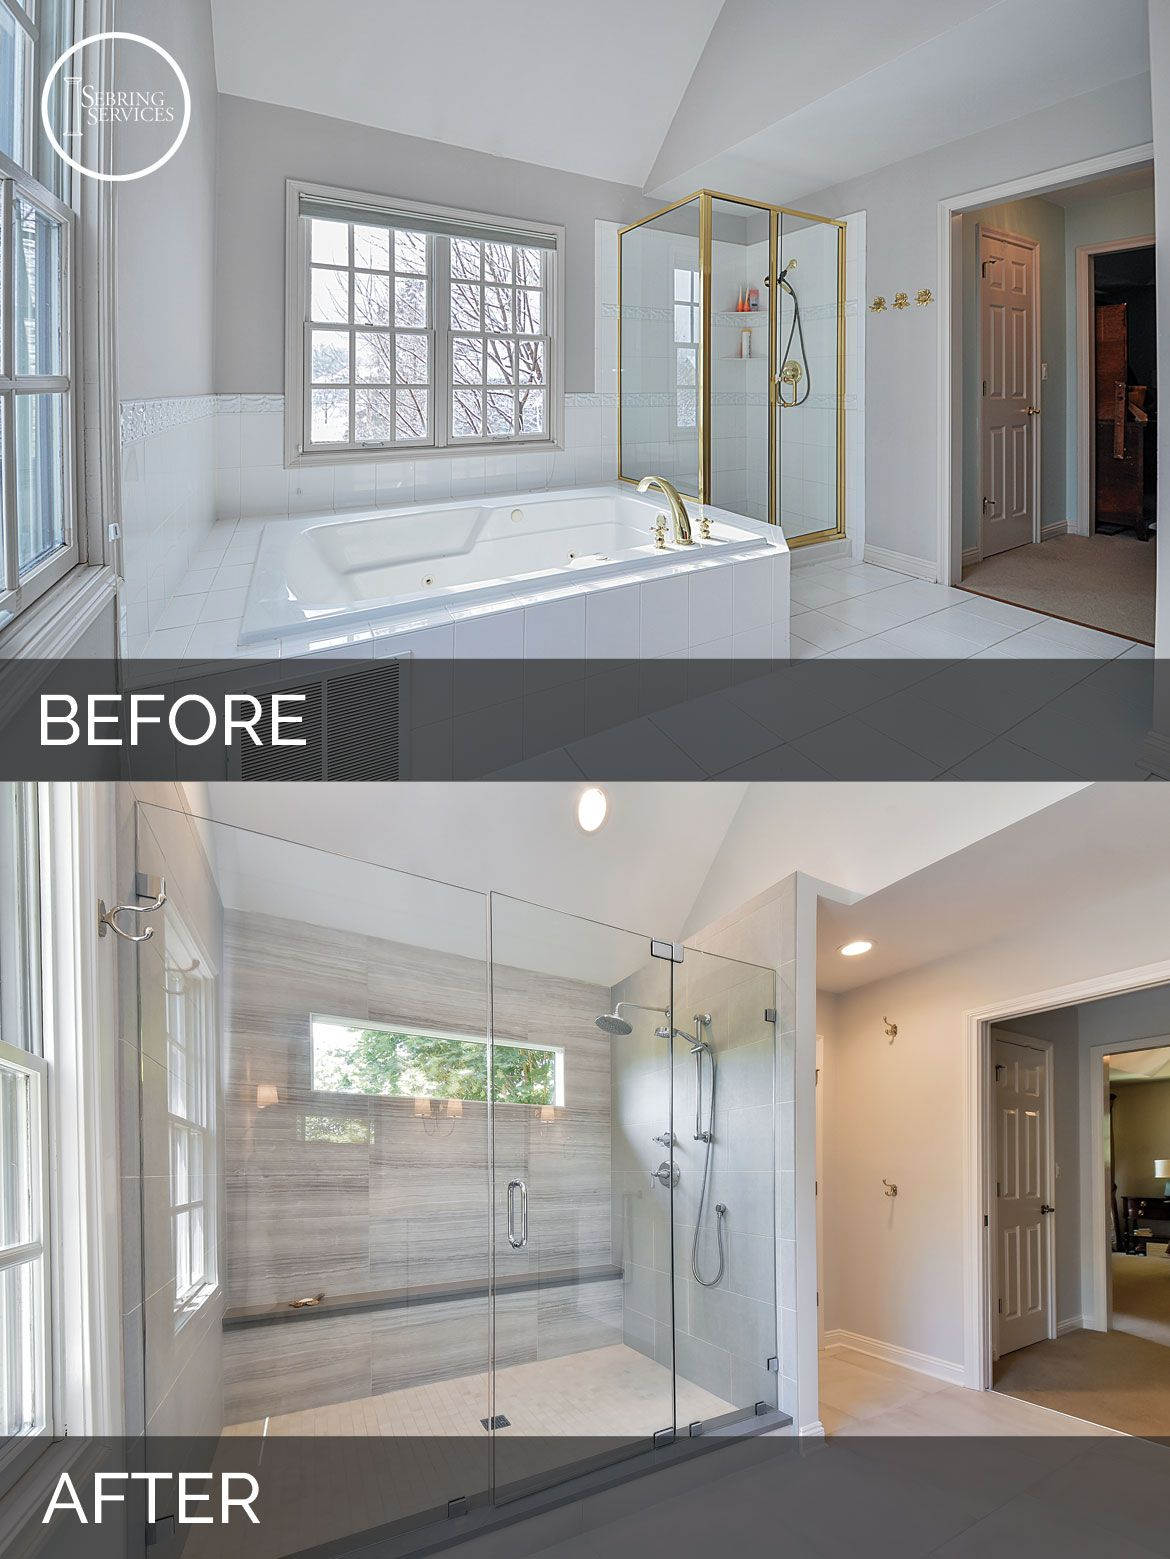 Carl susan 39 s master bath before after pictures Master bathroom remodel ideas